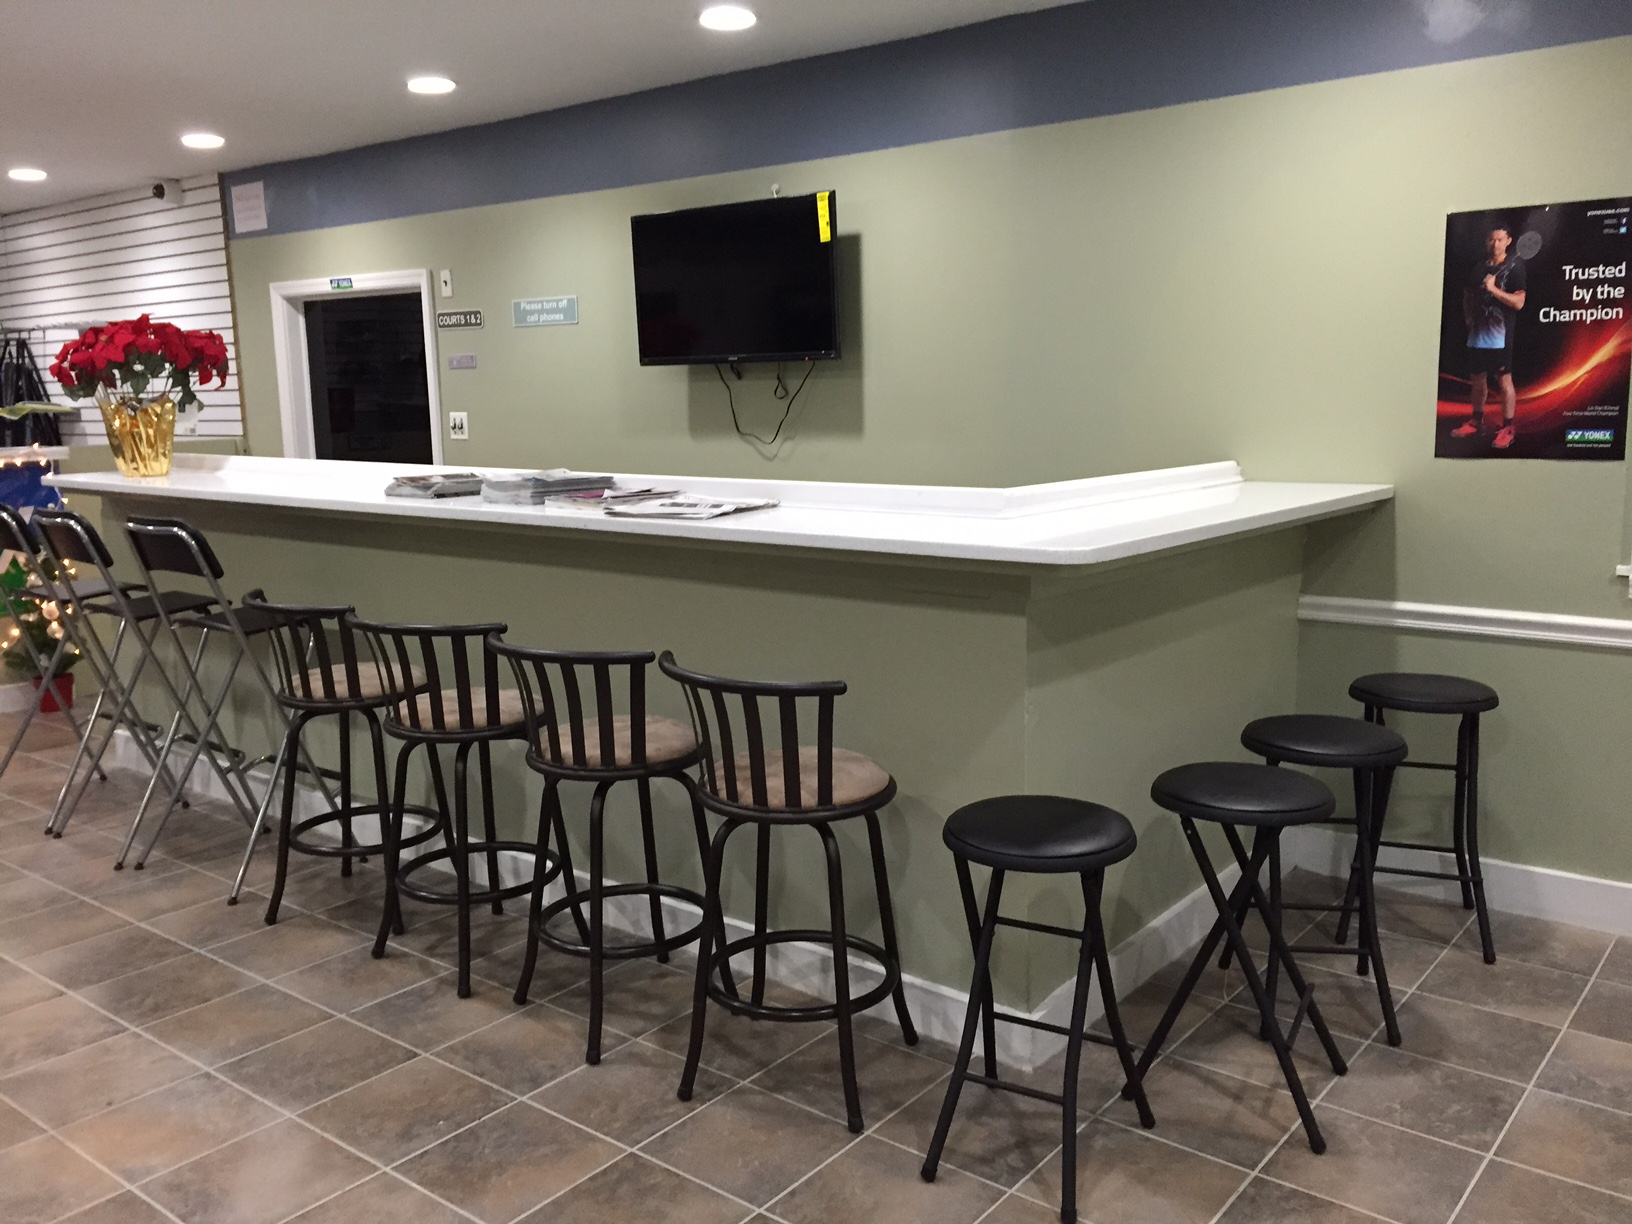 LISC Bar & Seating area